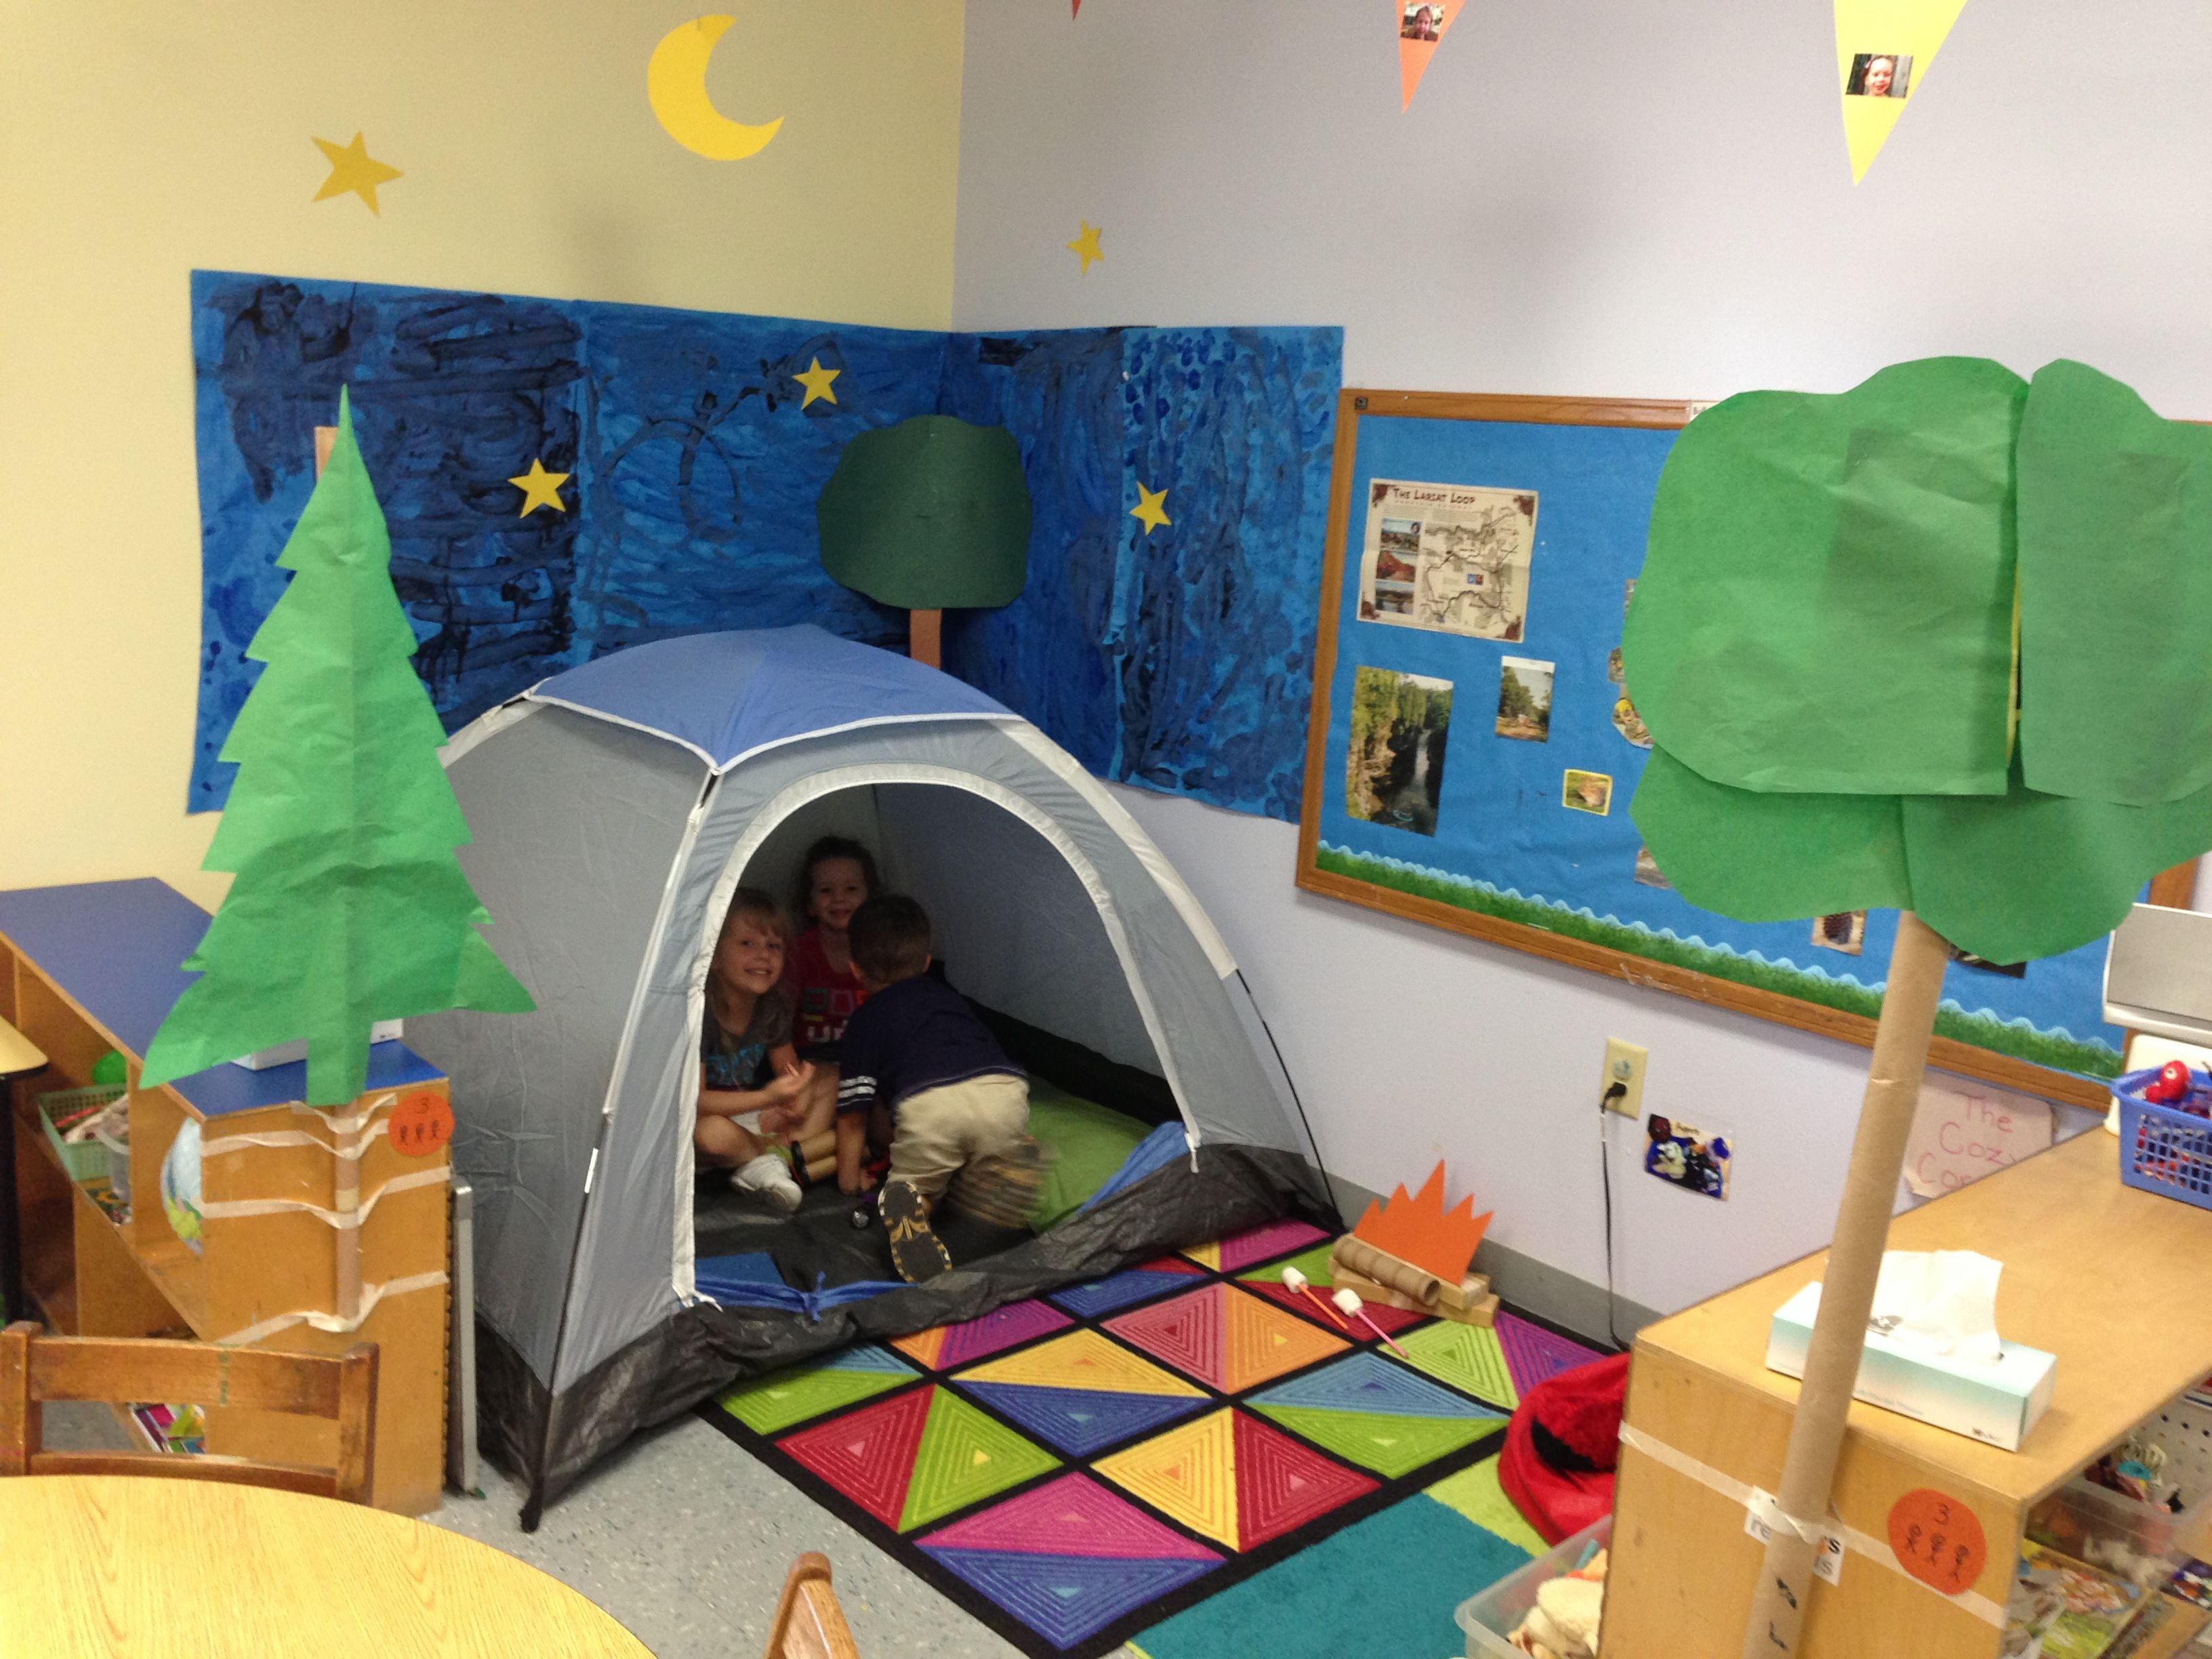 Classroom Ideas And Activities : Preschool camping theme for classroom i put up a tent